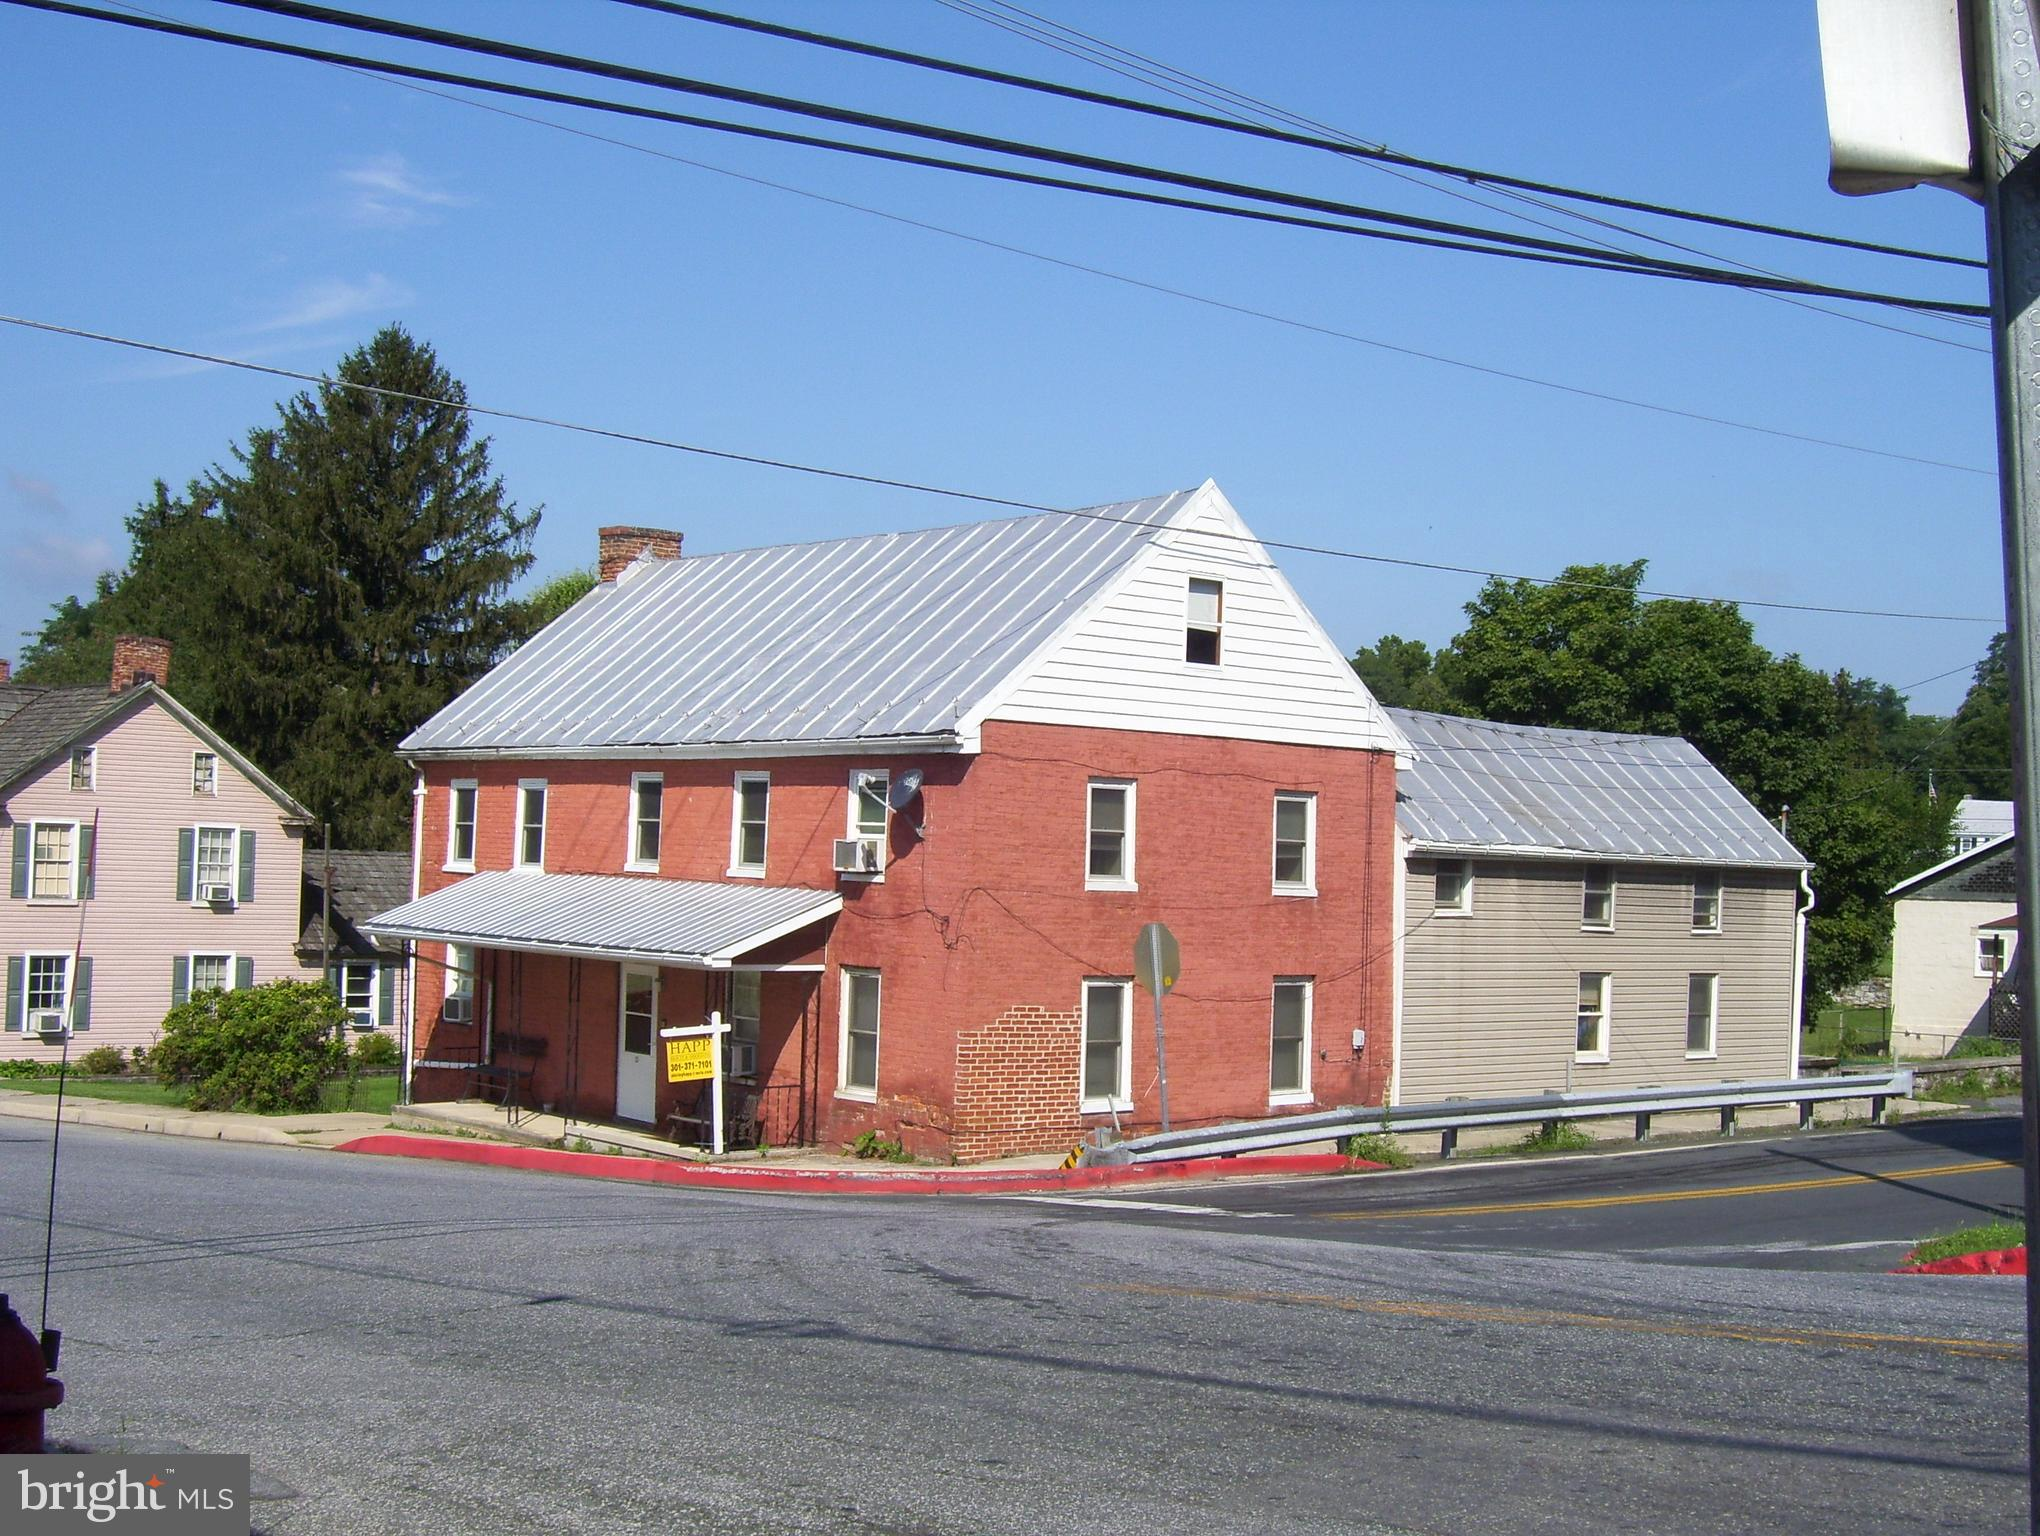 137 E MAIN STREET, SHARPSBURG, MD 21782